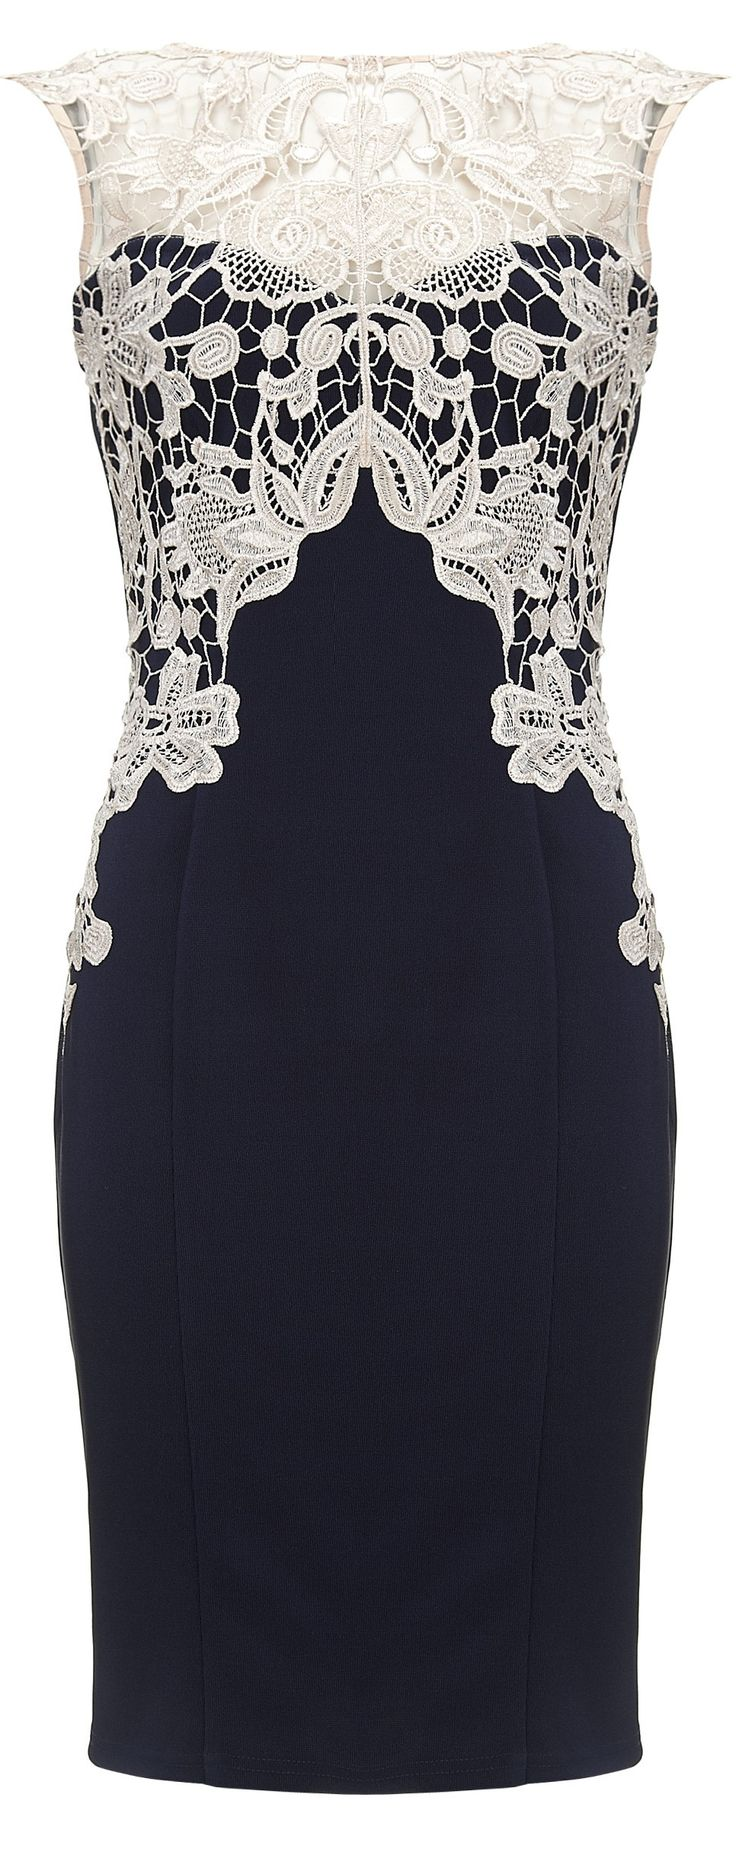 You can wear this lacy dress from Lipsy for smart casual.